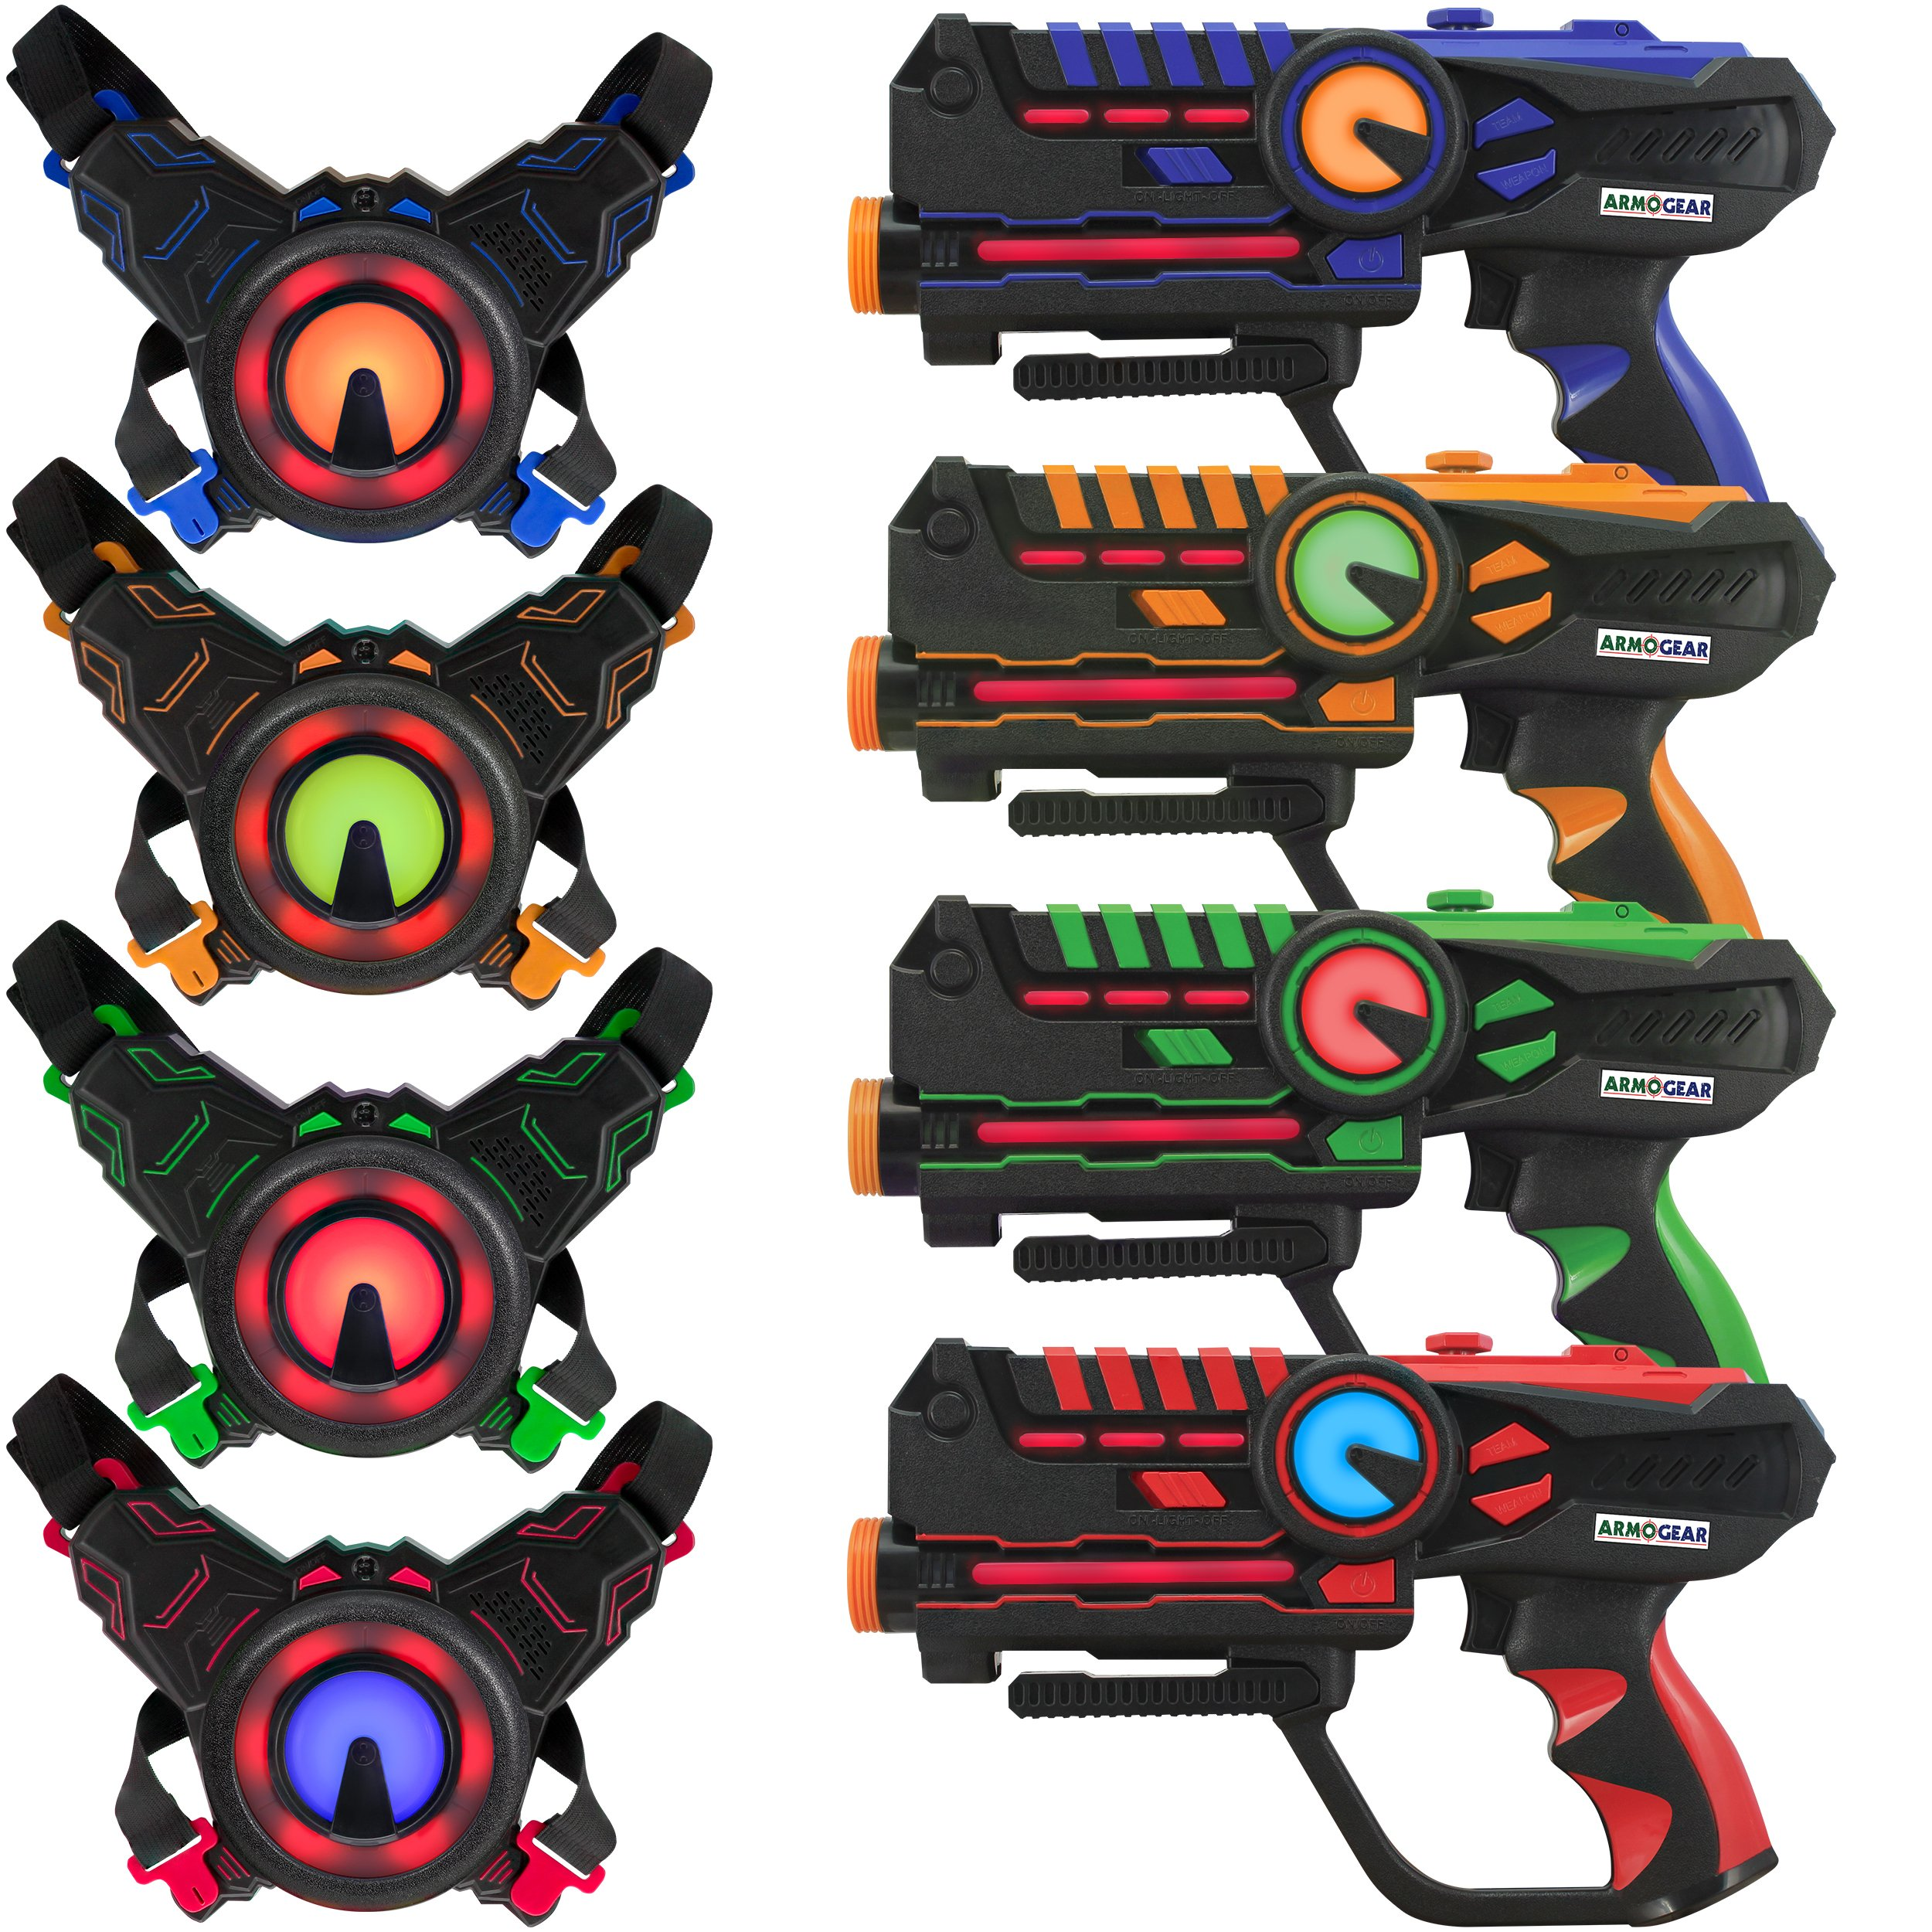 ArmoGear Infrared Laser Tag Blasters and Vests - Laser Battle Mega Pack Set of 4 - Infrared 0.9mW by ArmoGear